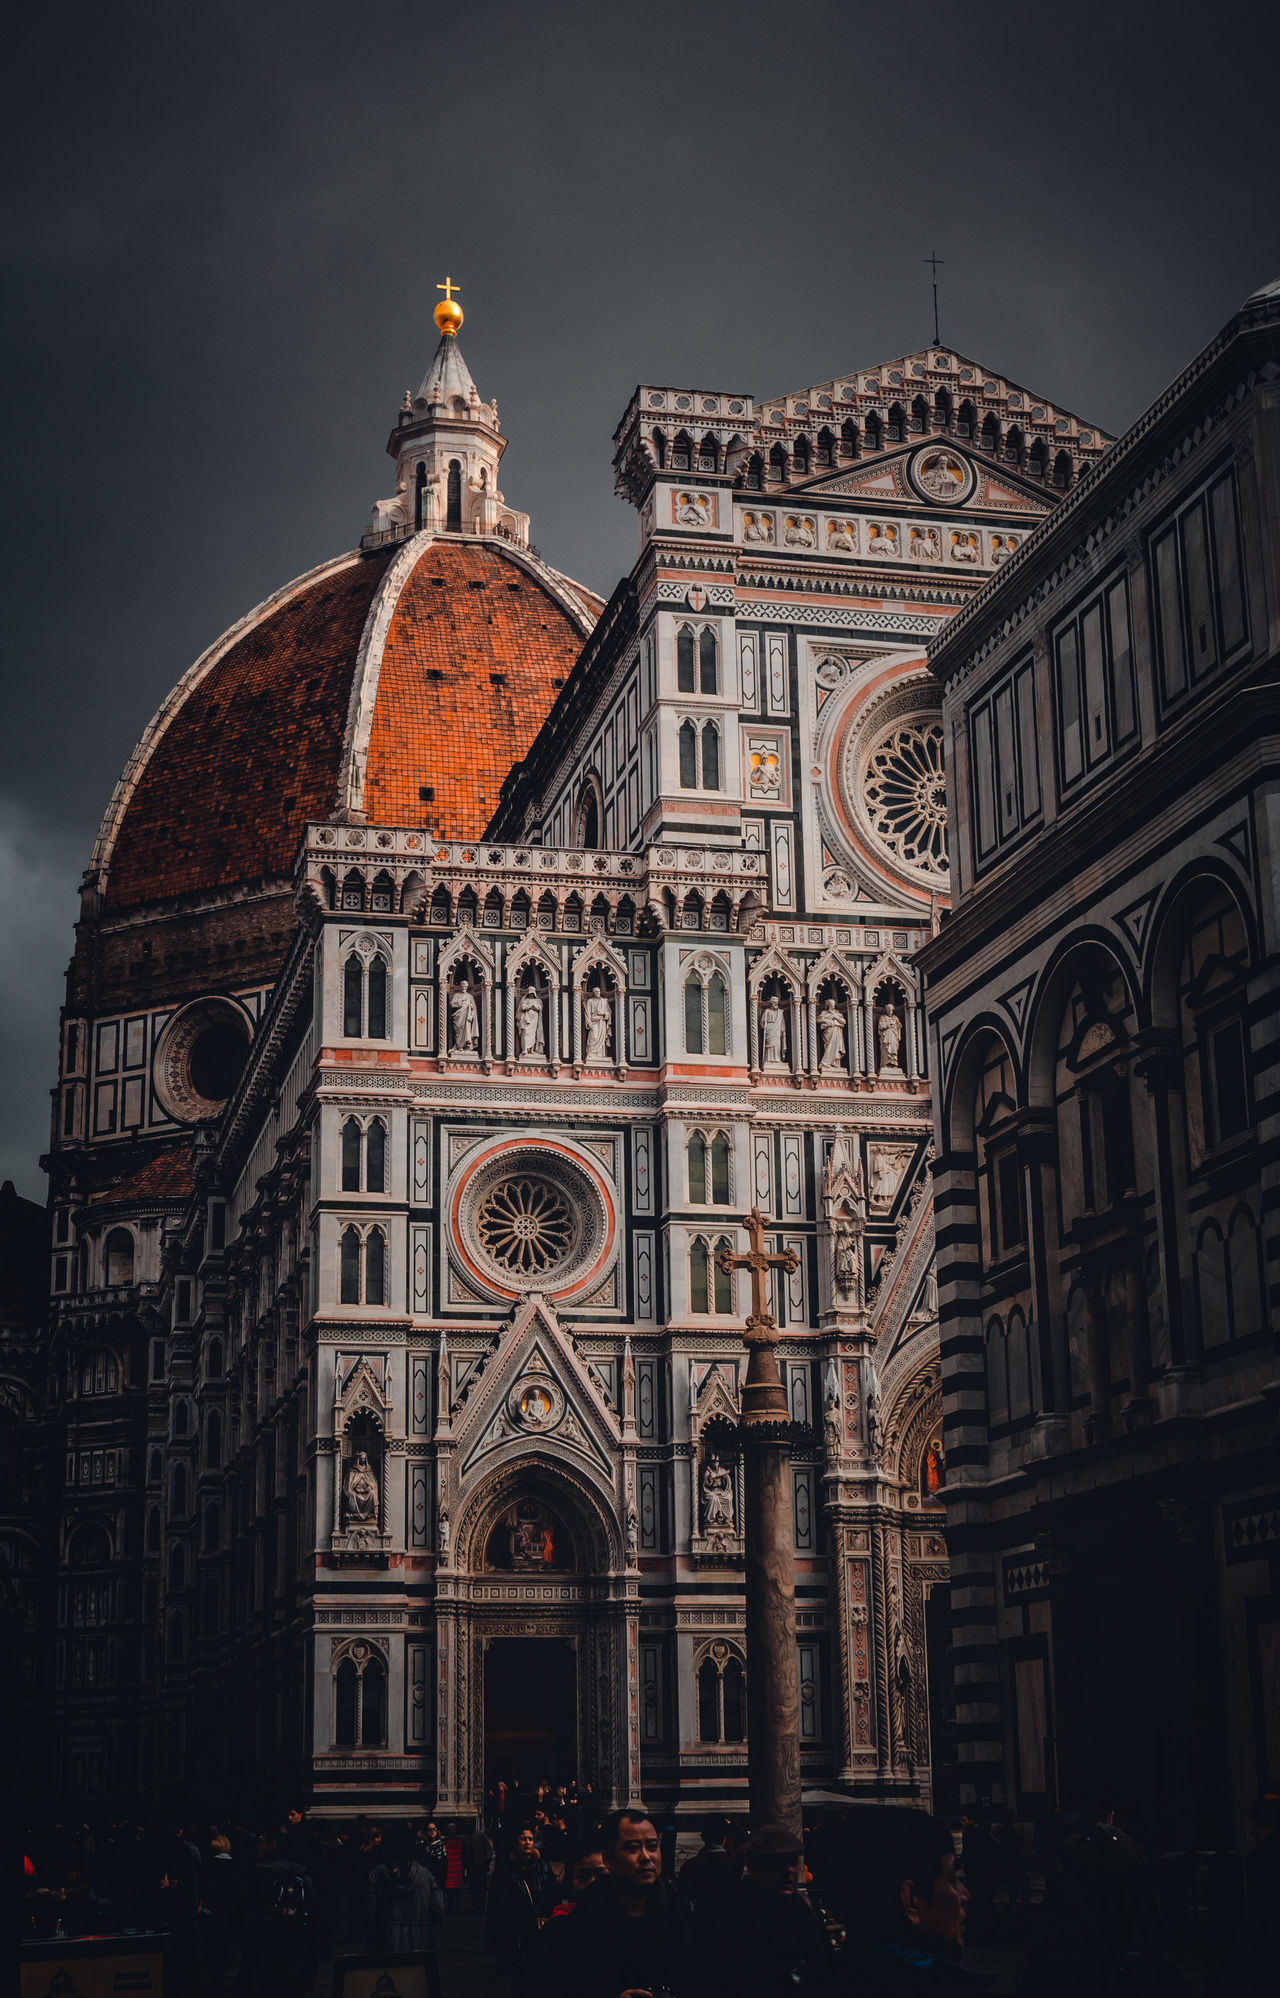 Architecture History Travel Destinations City Built Structure Building Exterior Government Dome Clock Tower Sky Outdoors EyeEm Streetphotography EyeEm Best Shots EyeEm Best Edits Colorful EyeEm Gallery Duomo Tourism Old-fashioned Eye4photography  Exploring Florence Low Angle View Street